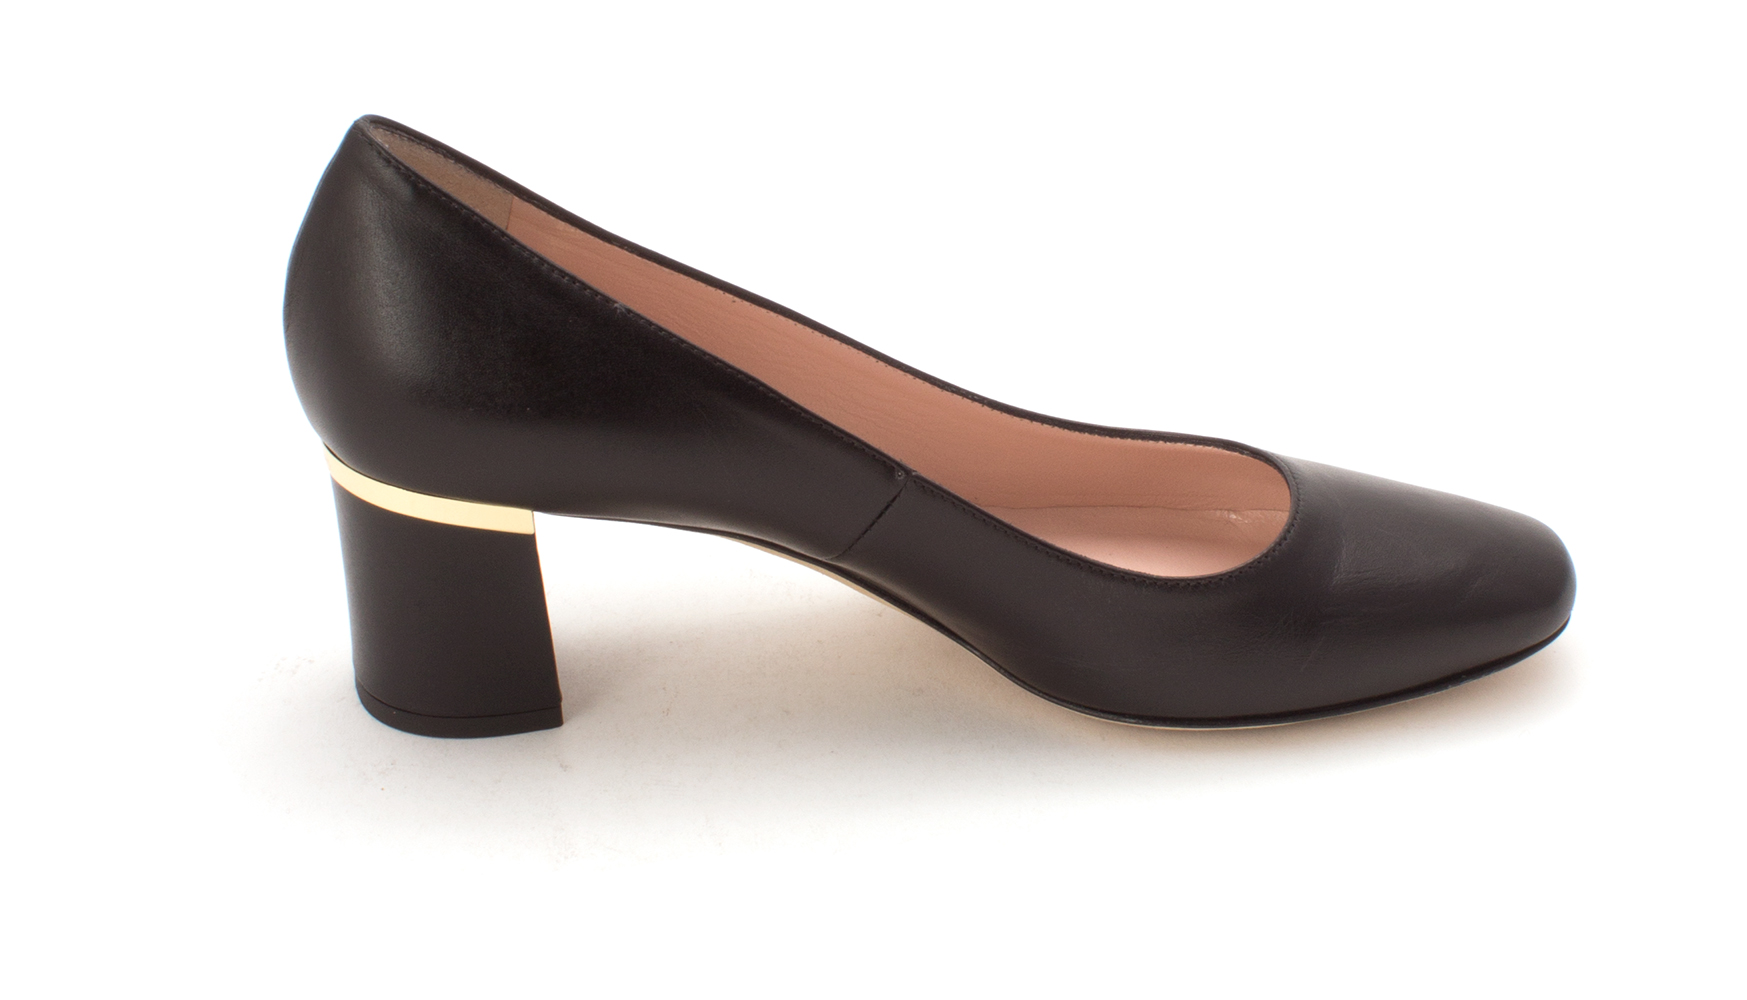 14d604a3b05f Kate Spade New York Womens dolores too Closed Toe D-orsay Pumps ...